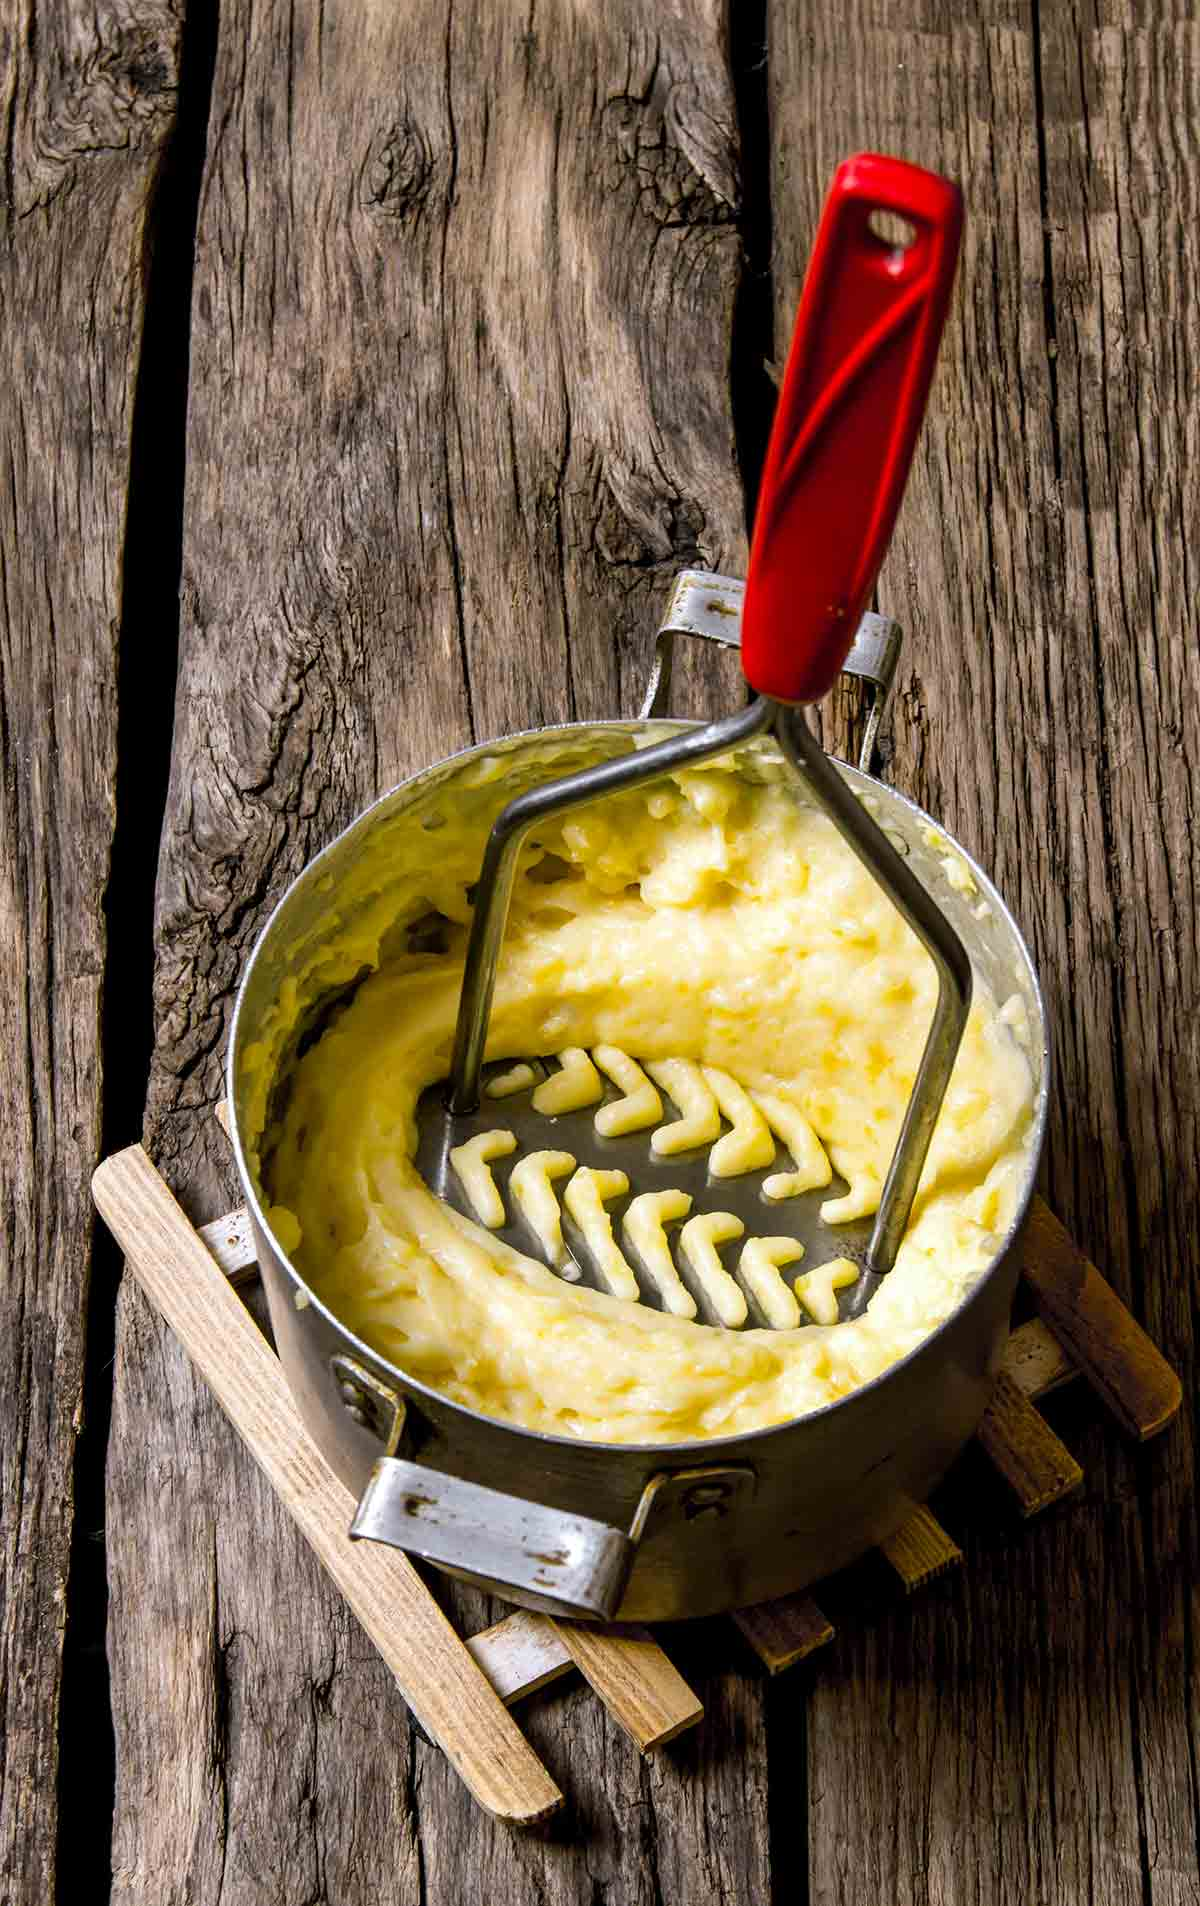 A potato masher pressing down in a pot of olive oil mashed potatoes.